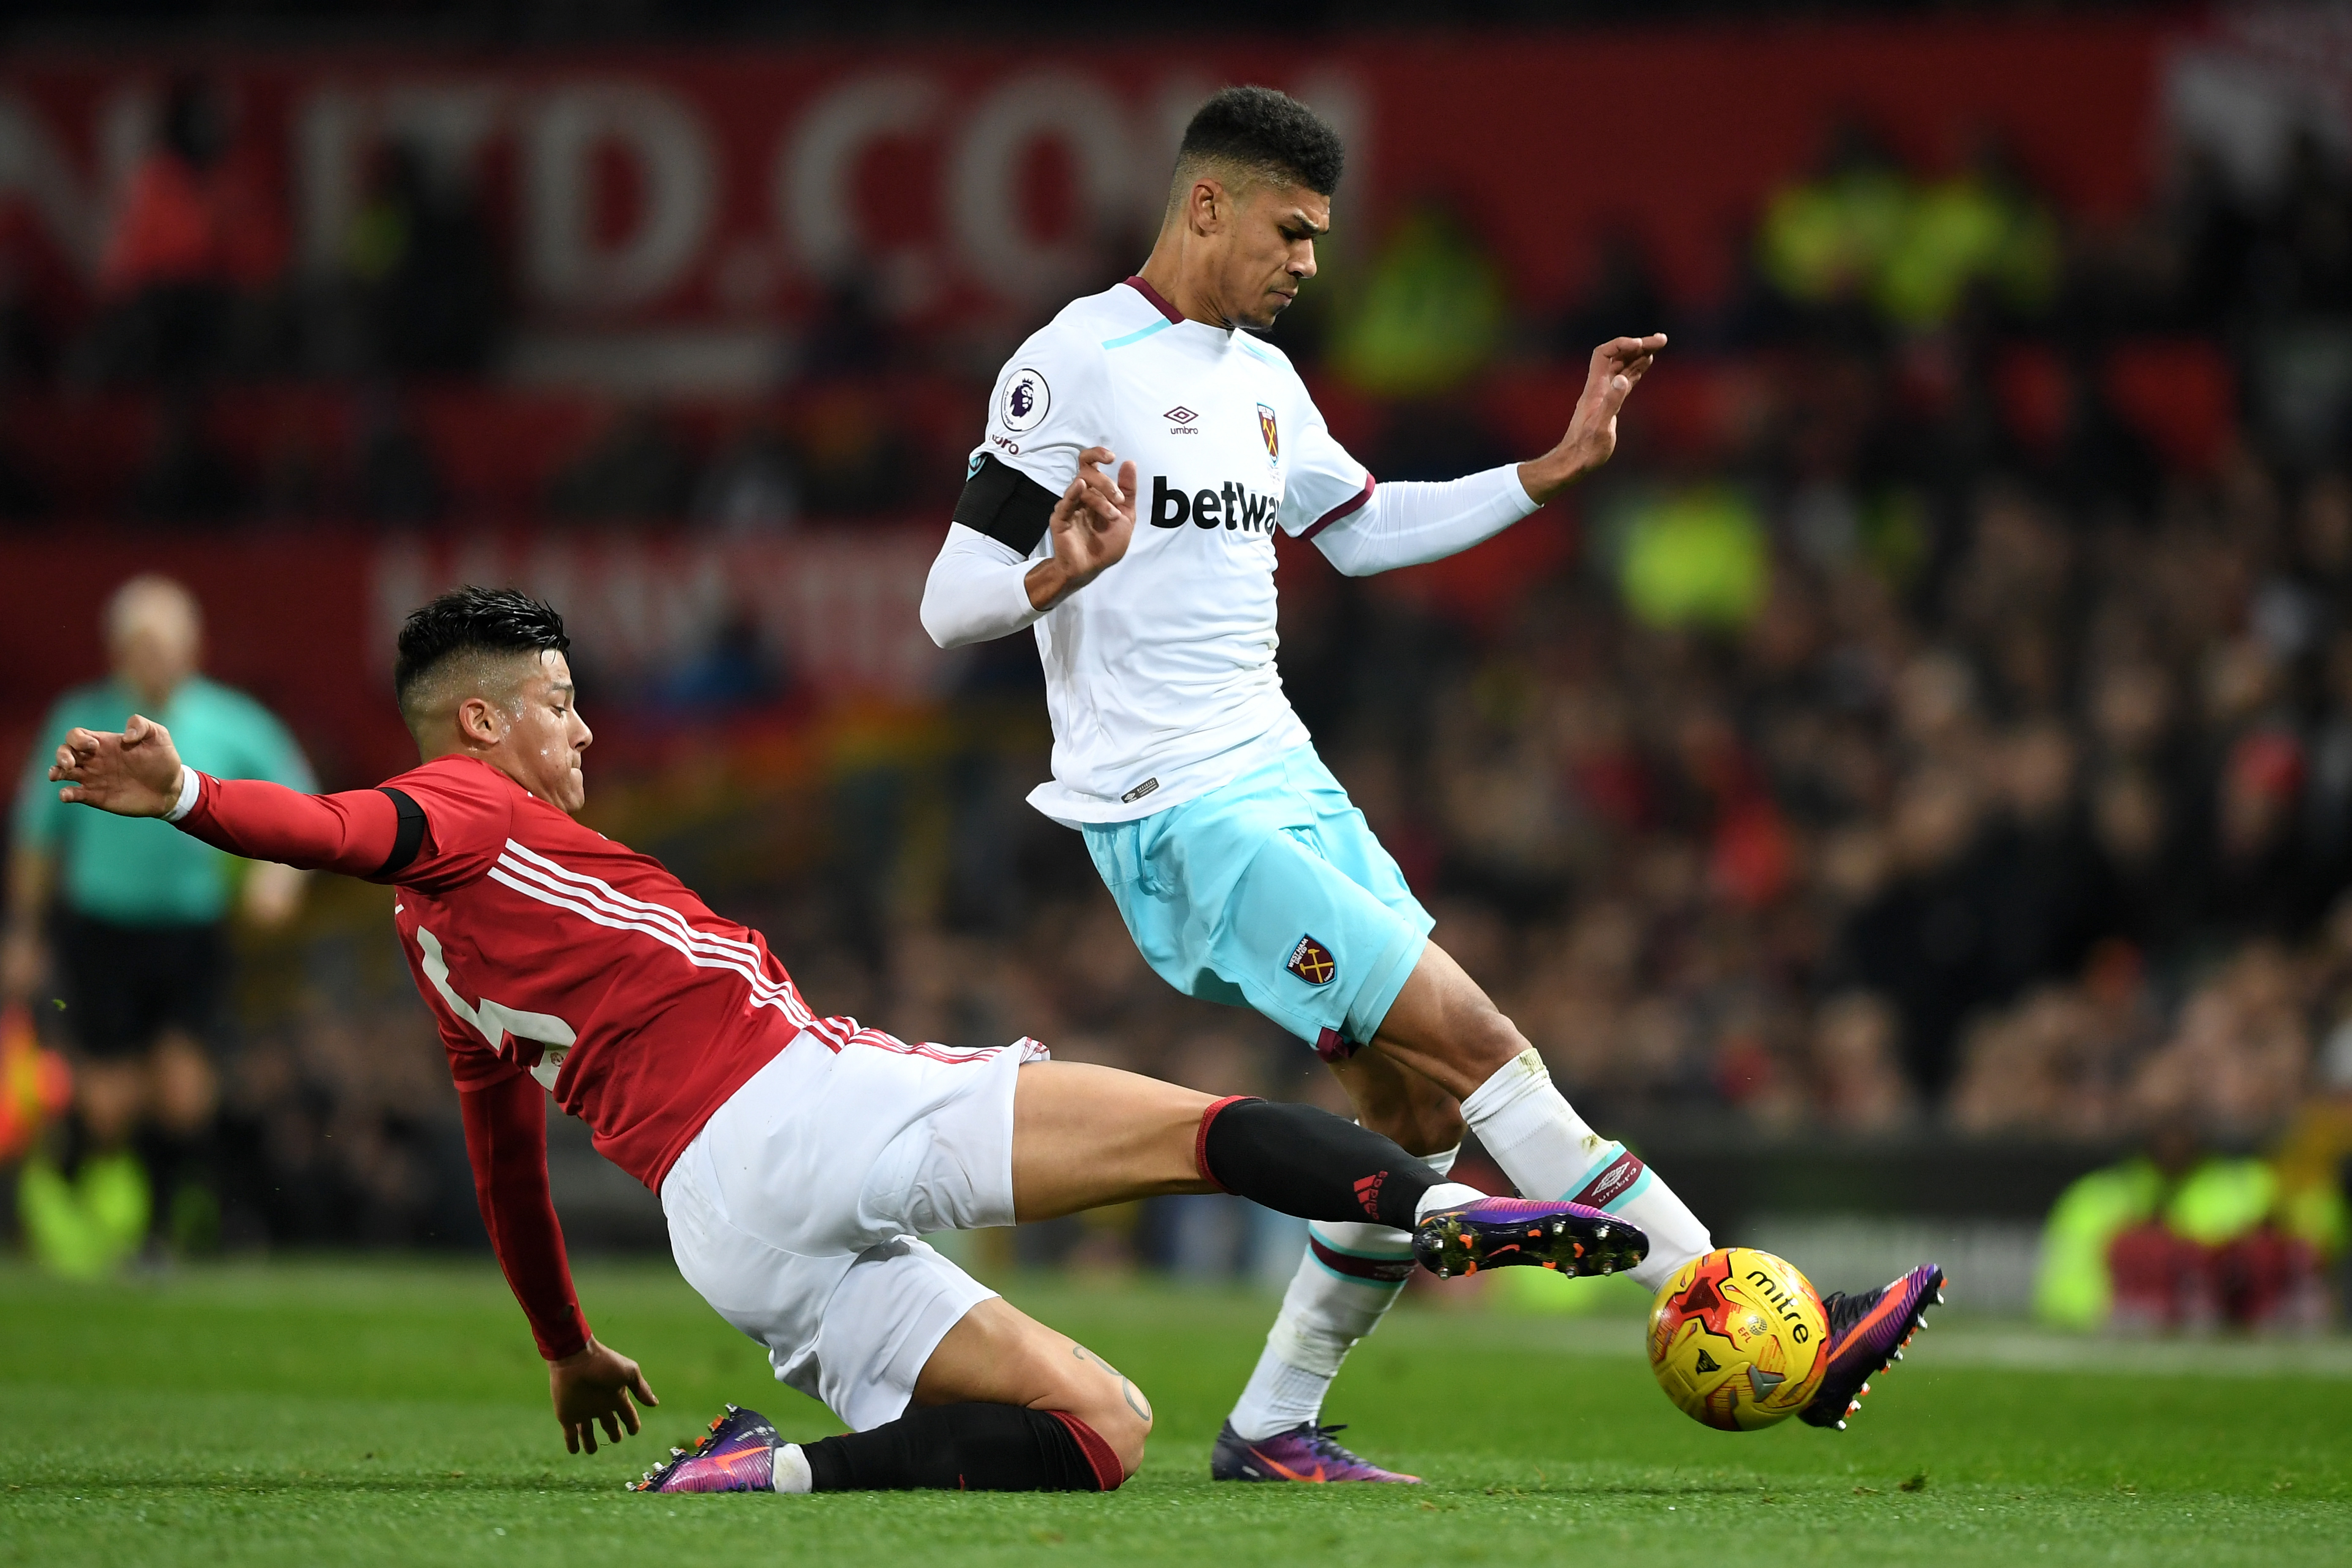 M Ashley Fletcher of West Ham United is tackled by Marcos Rojo of Manchester United